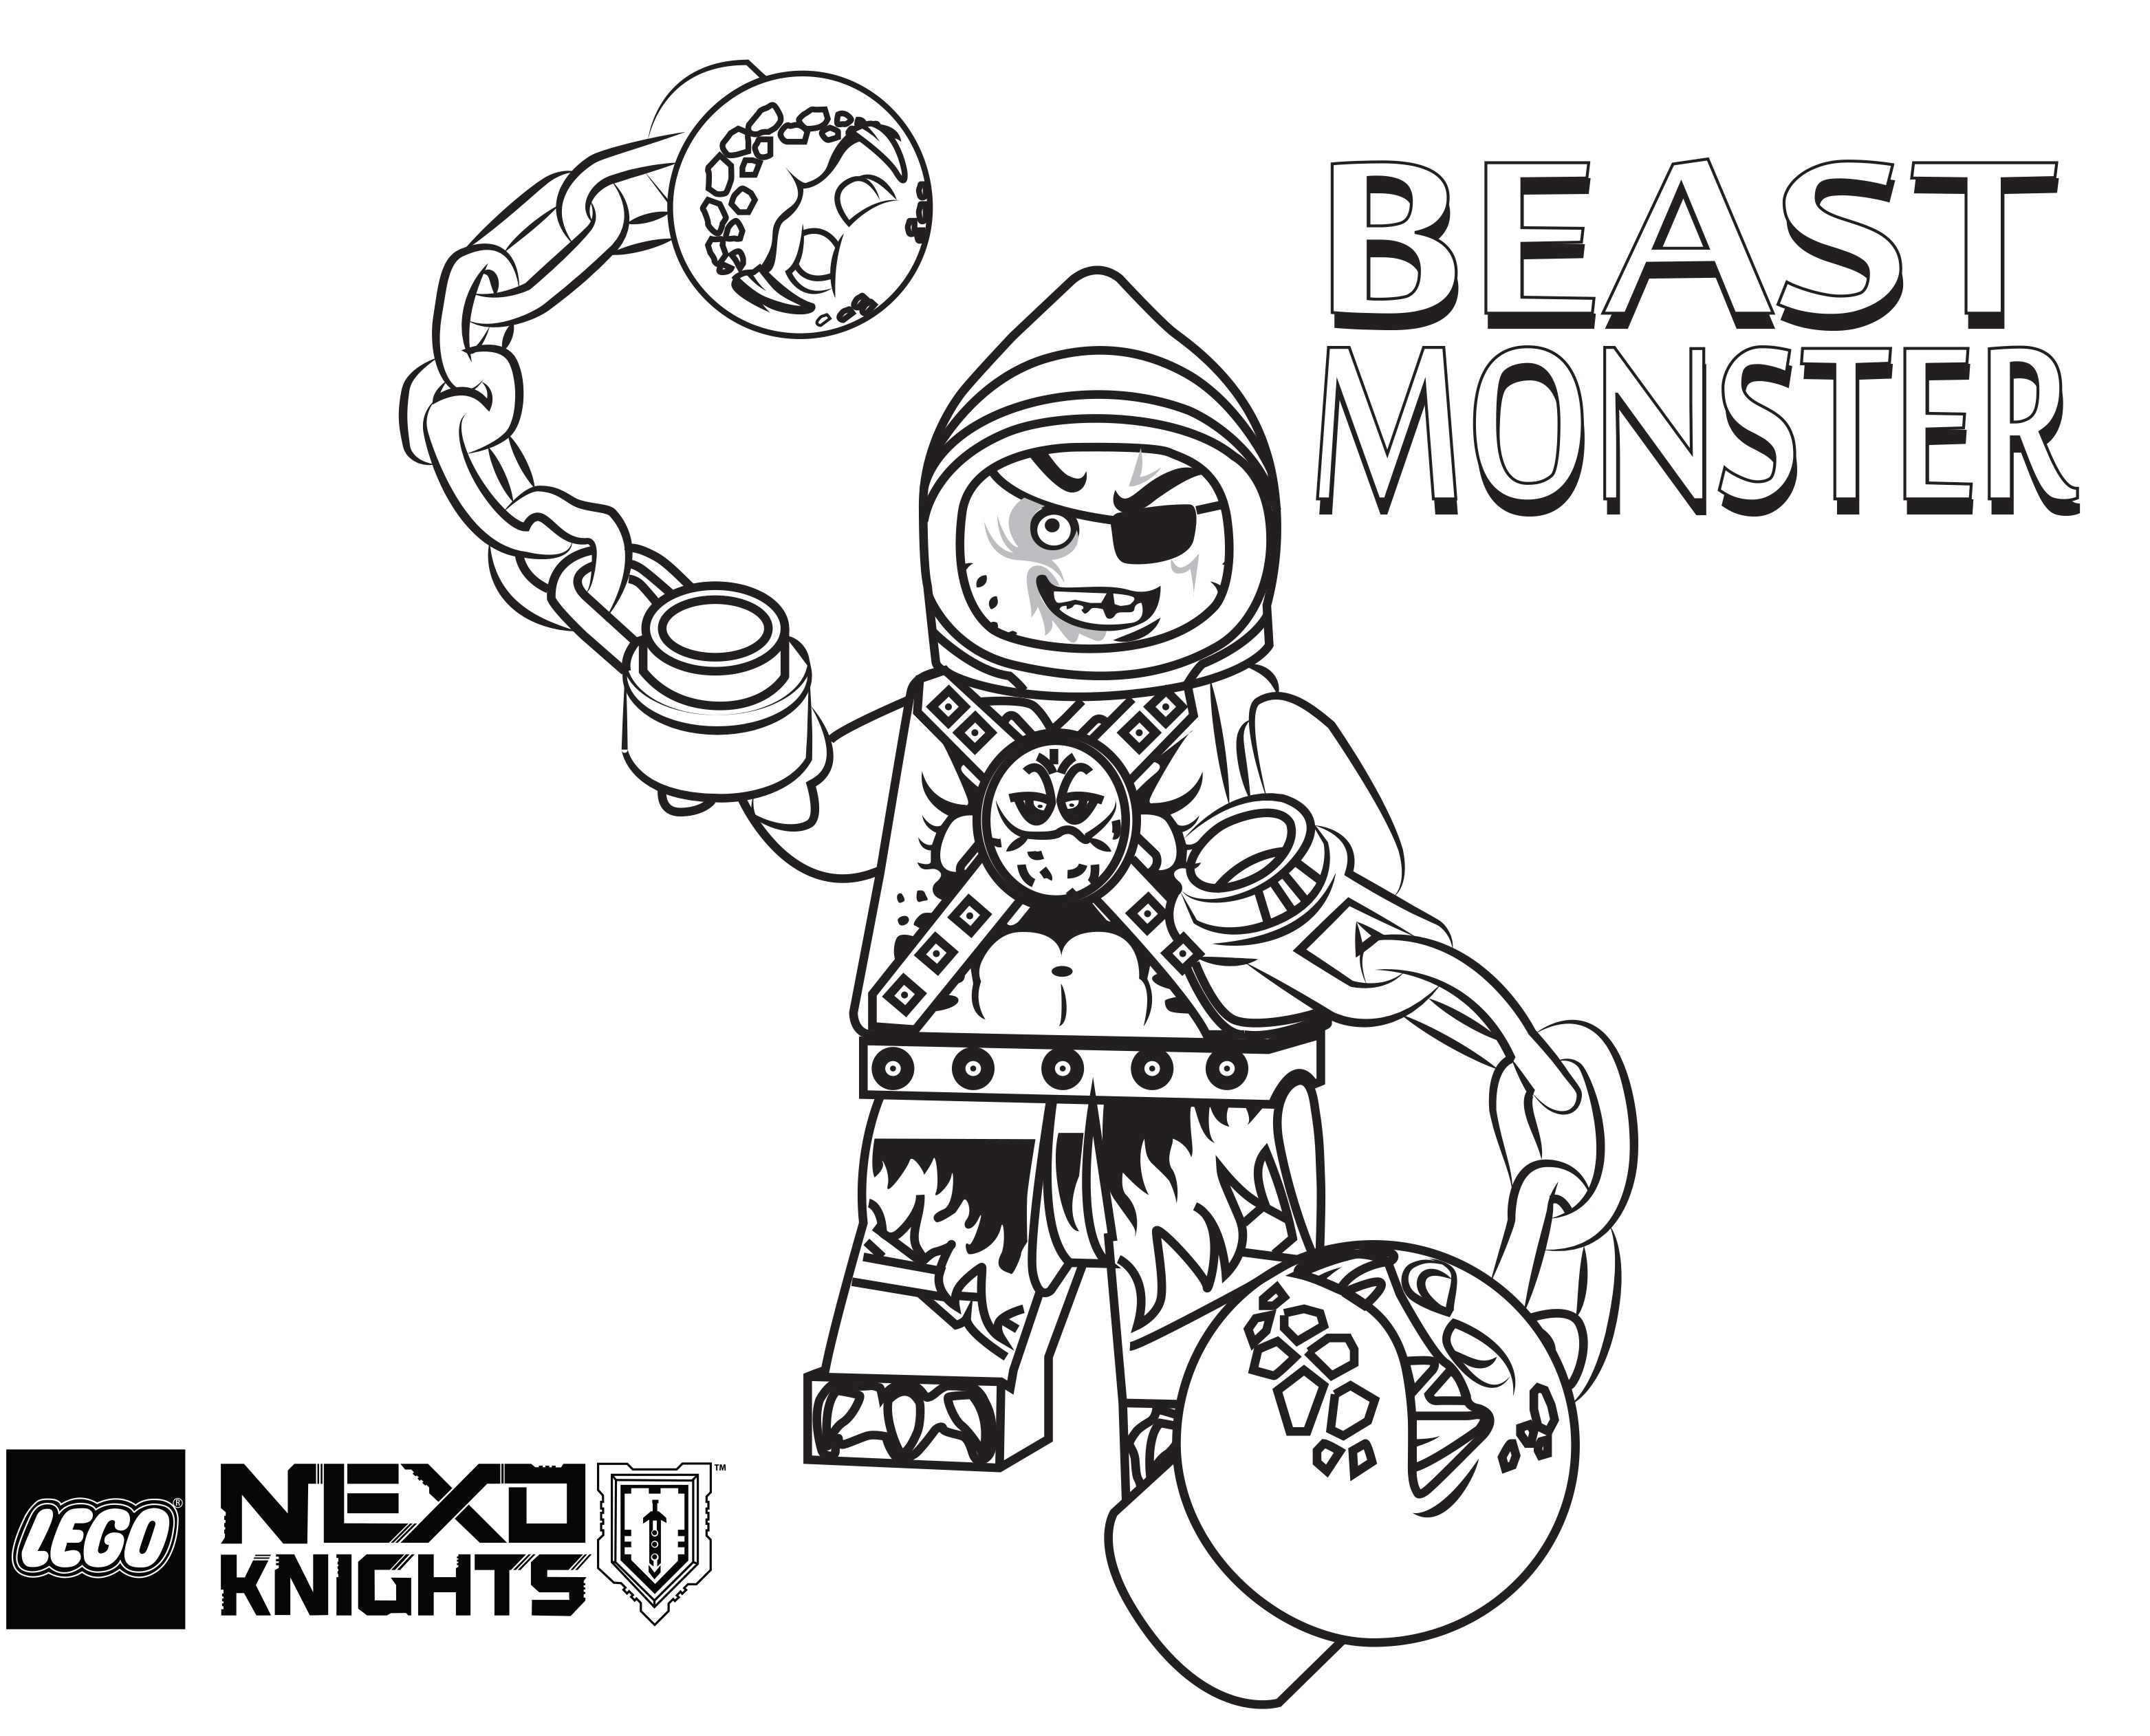 Best Lego Nexo Knights Coloring Pages Free Printable Lego Nexo to Print Of Lego Dimensions Coloring Pages Collection Page Ninja Grig3 Printable